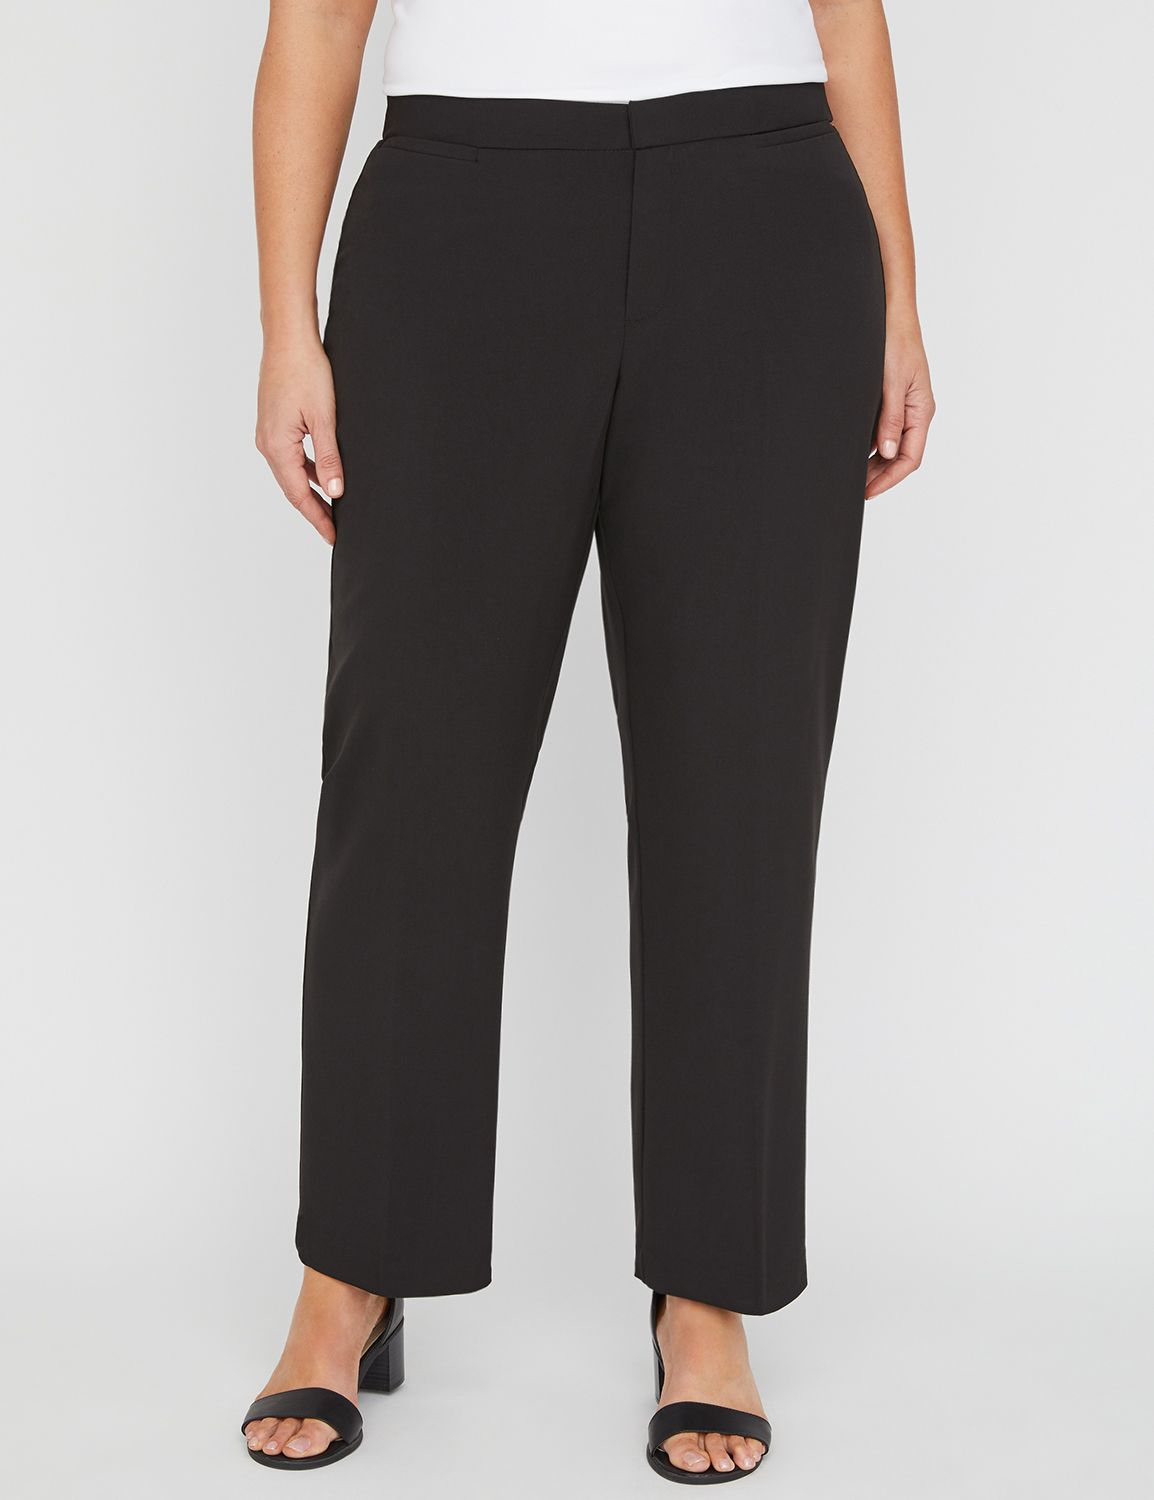 fbdf811220 Right Fit Pant (Moderately Curvy)